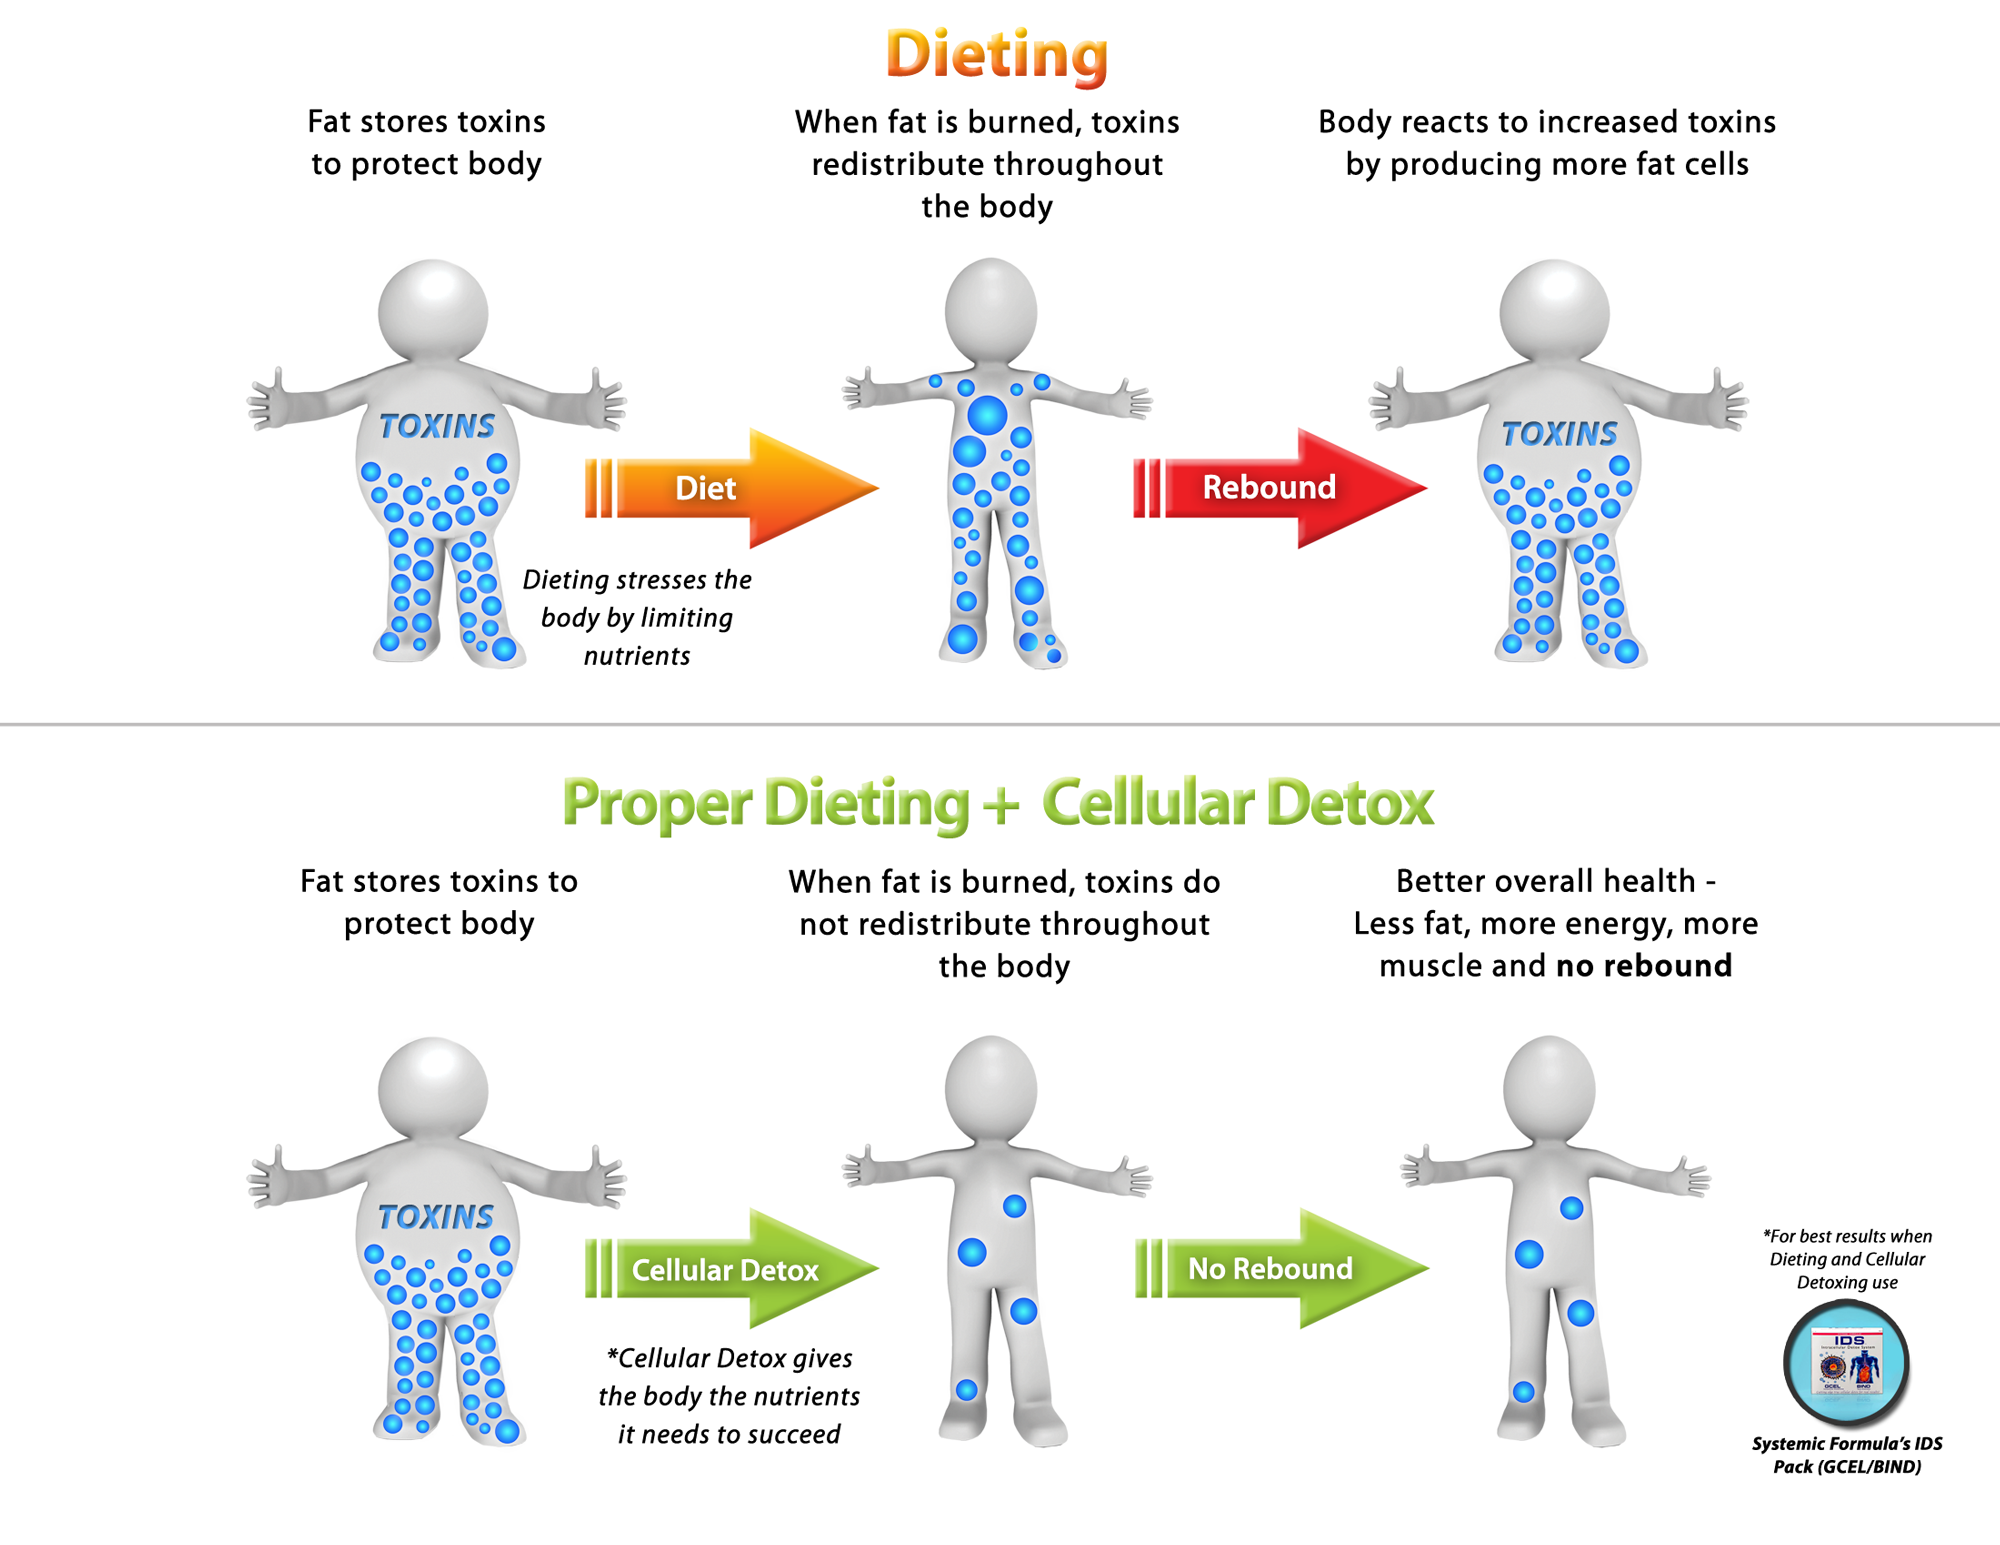 hight resolution of image and explanation of the dieting and detox diagram how to lose toxic fat for good